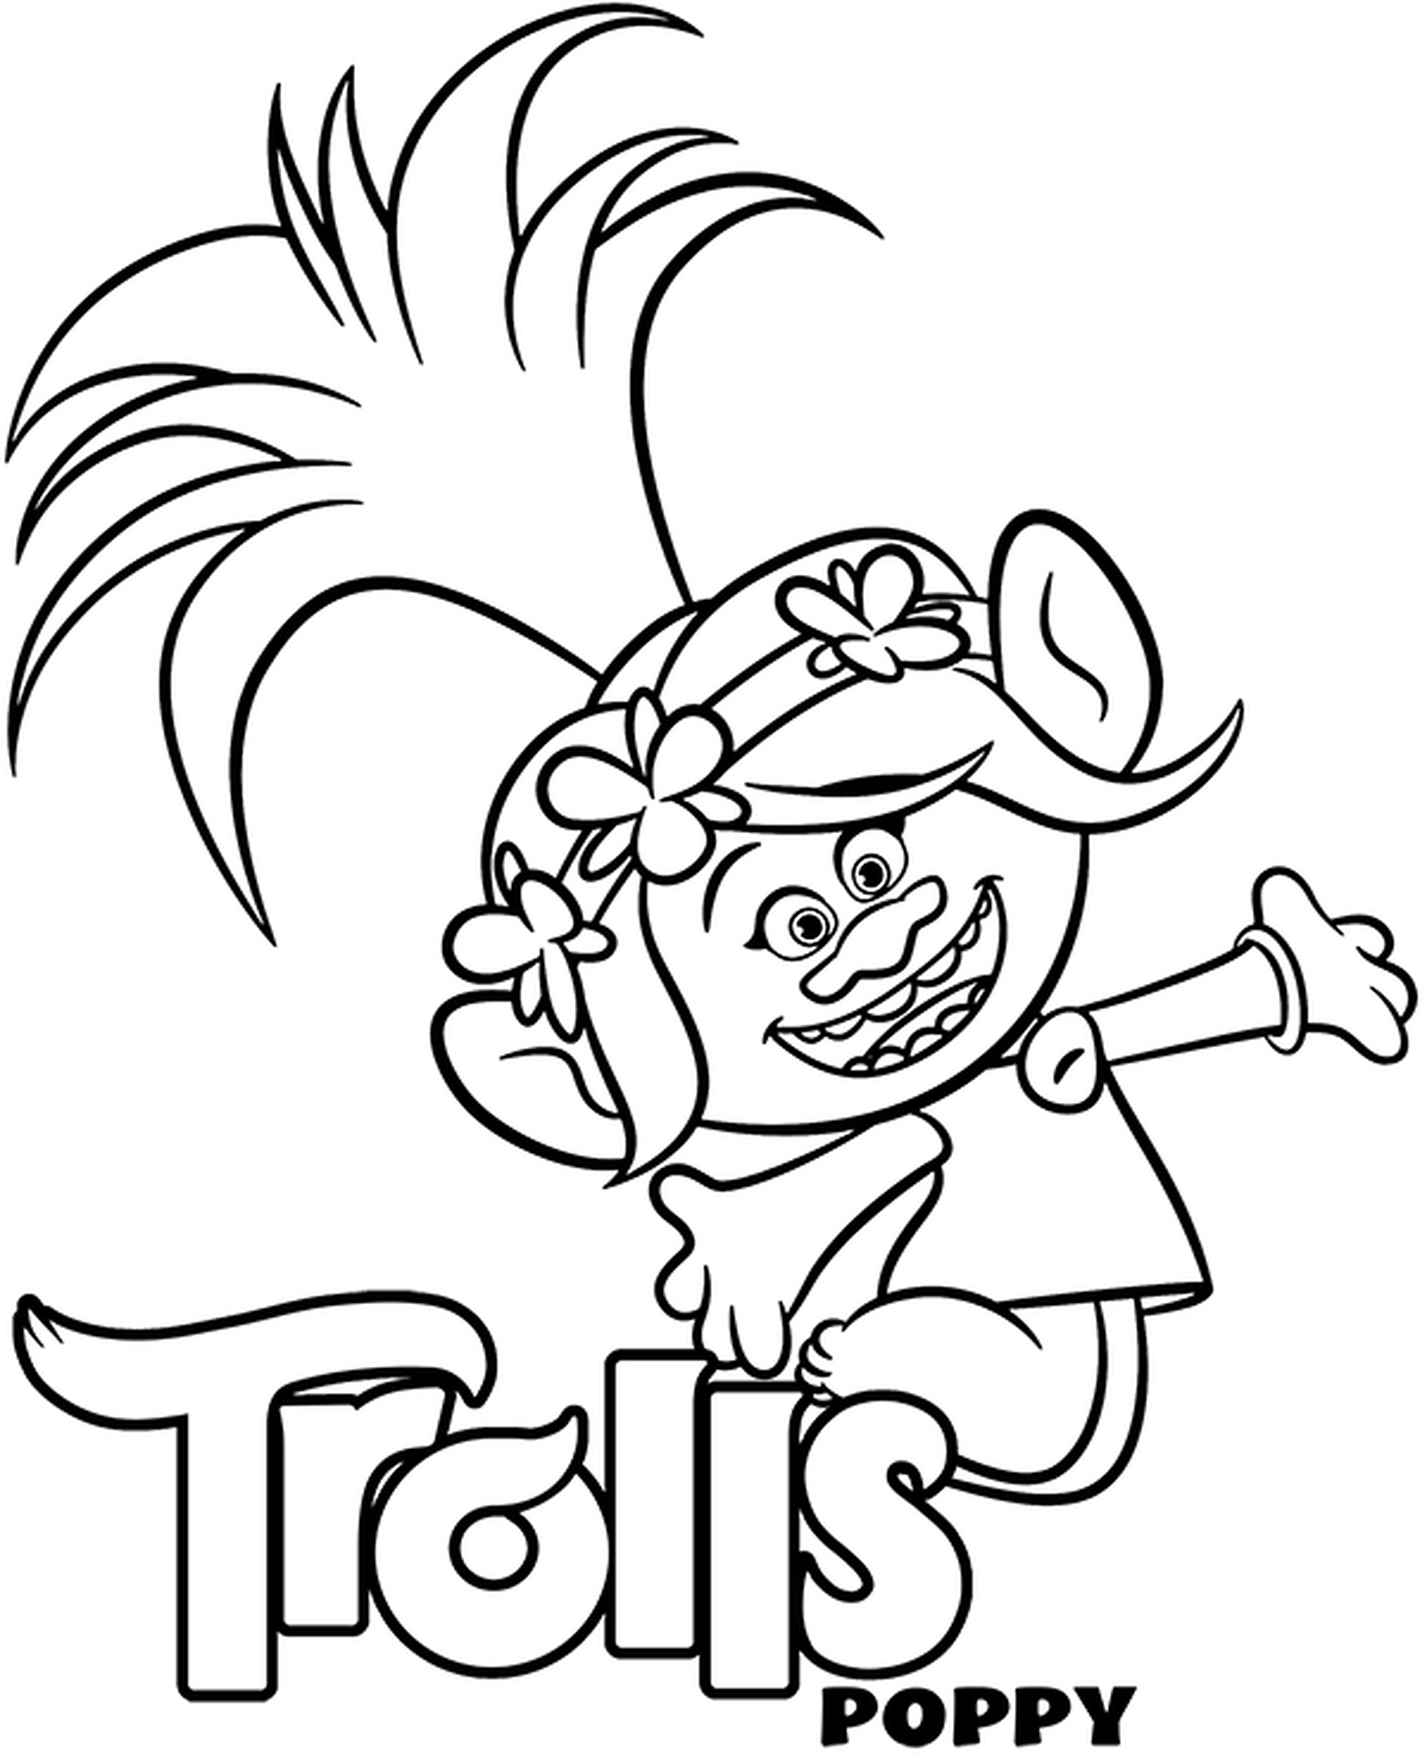 Poppy And Trolls Logo